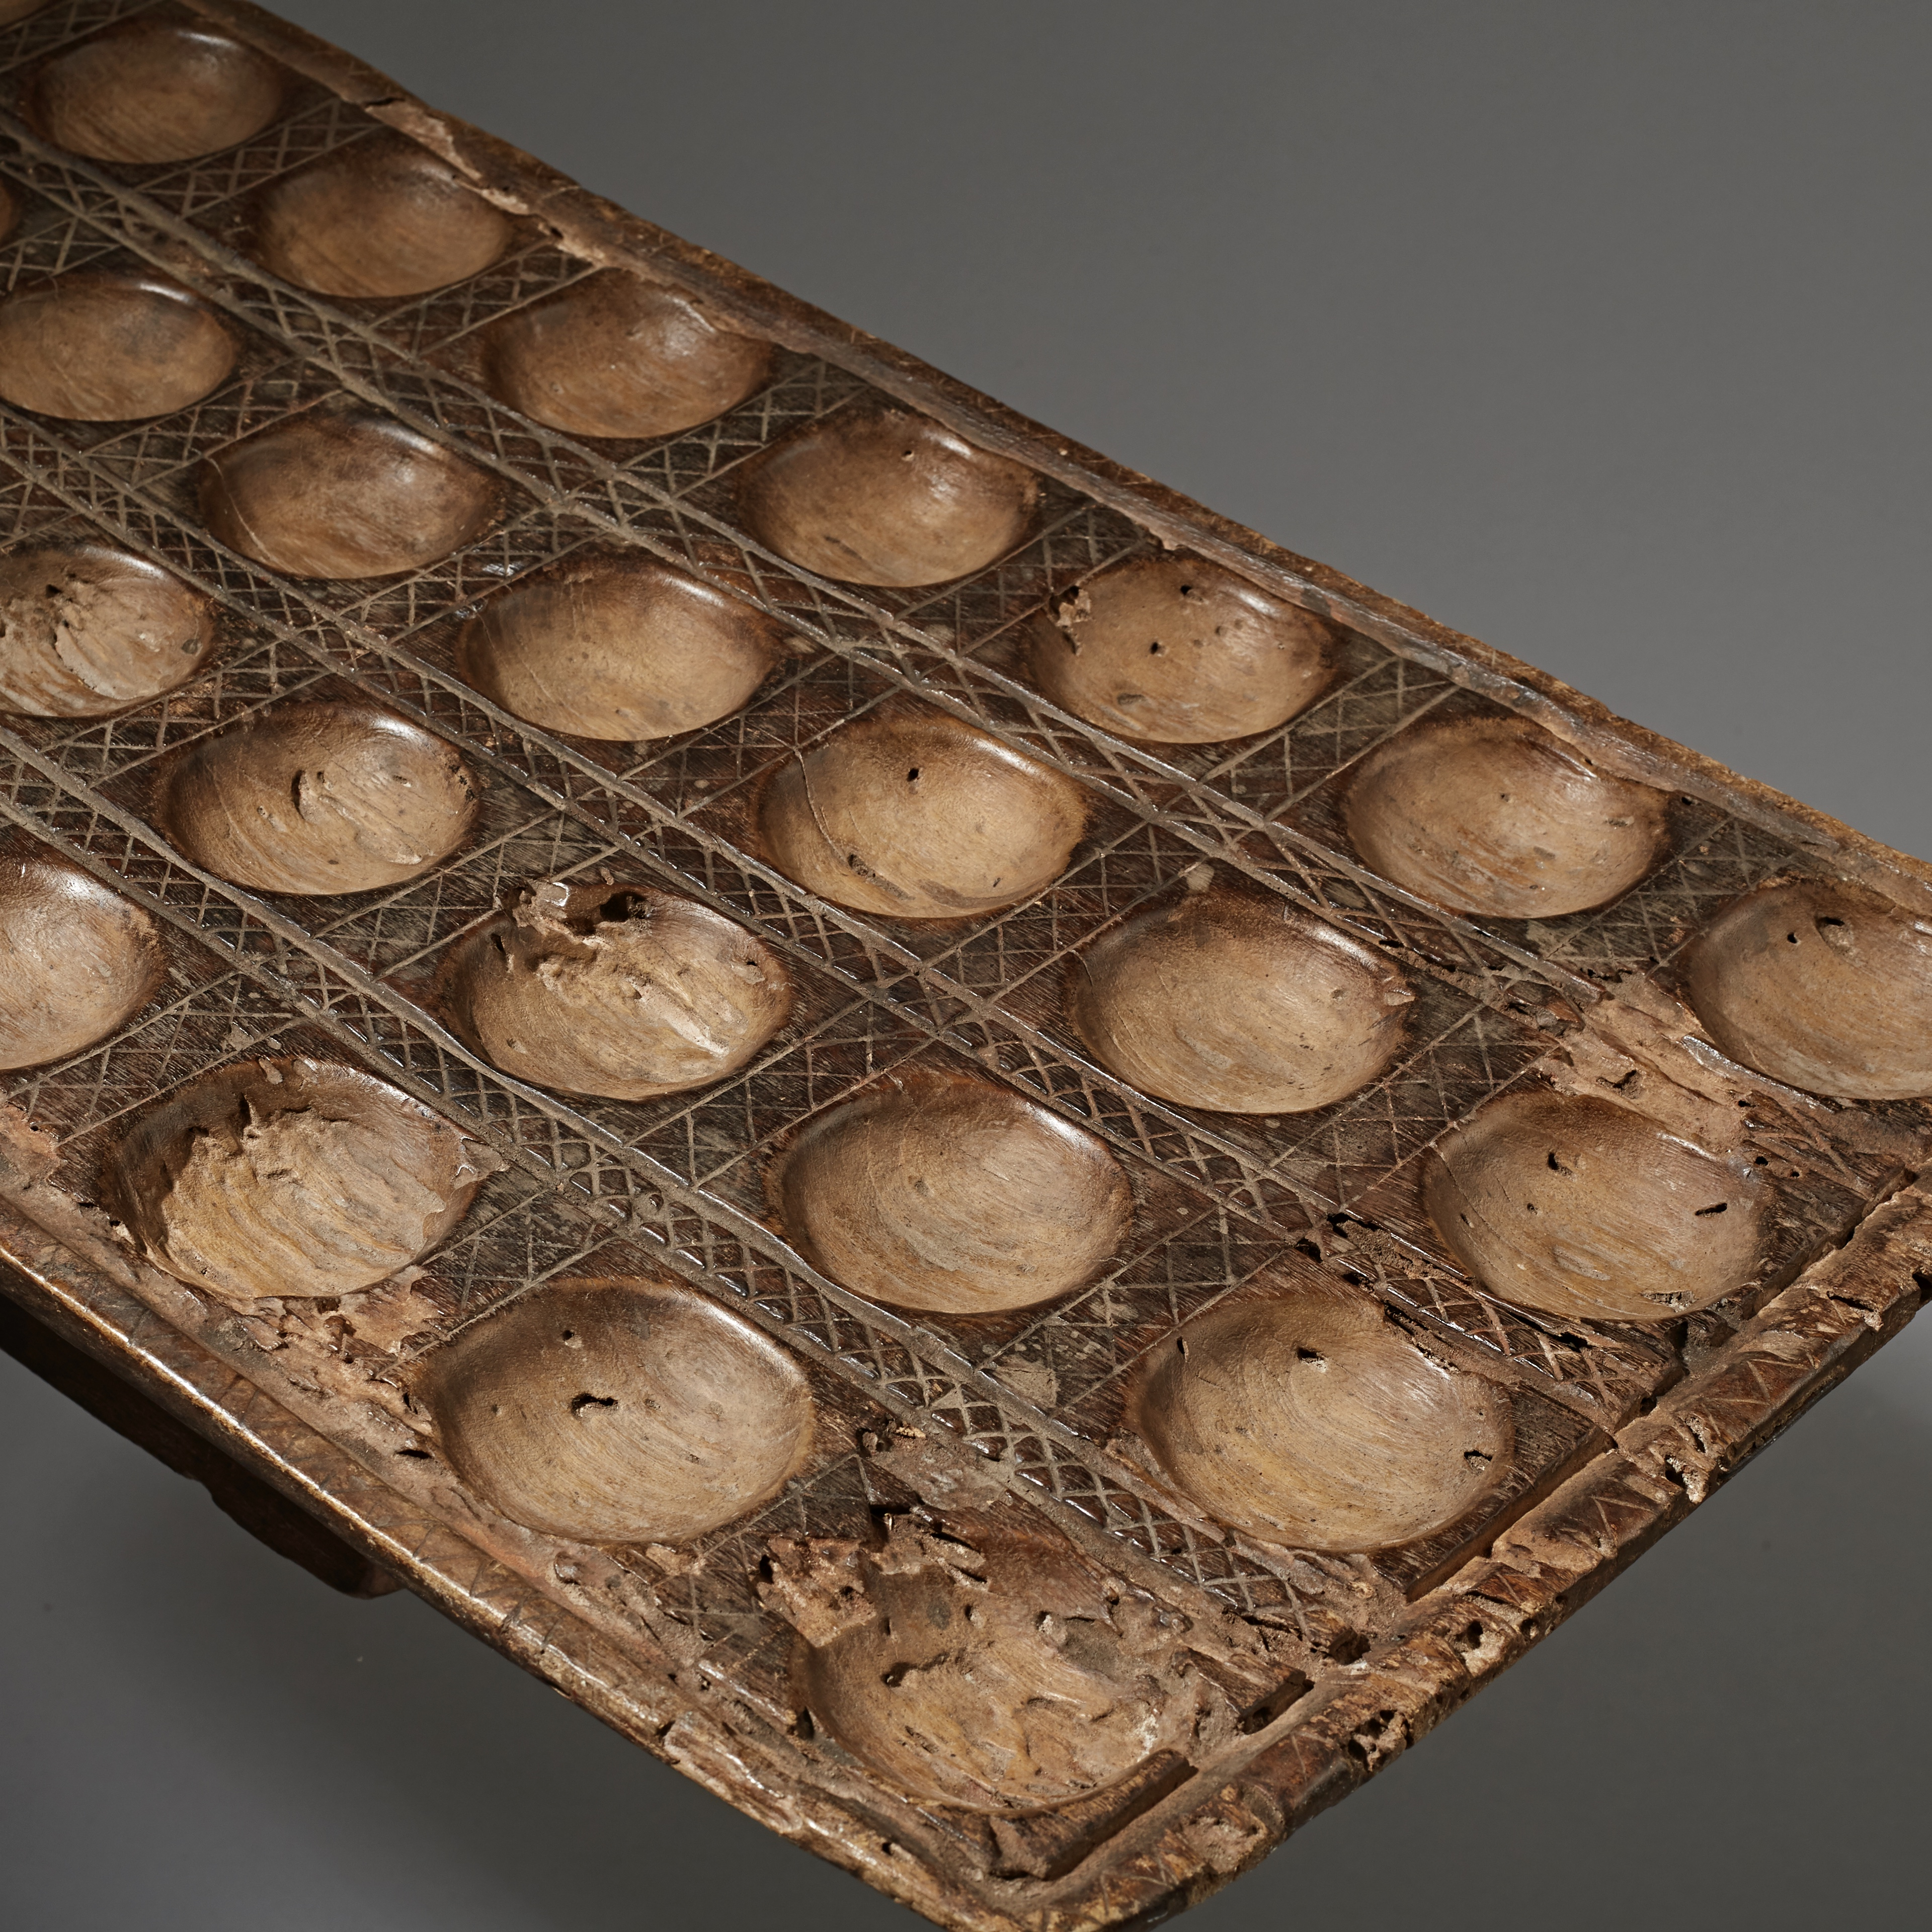 SD [ special deal ] A SUBSTANTIAL MANCALA GAMEBOARD FROM TANZANIA ( No 2357 )